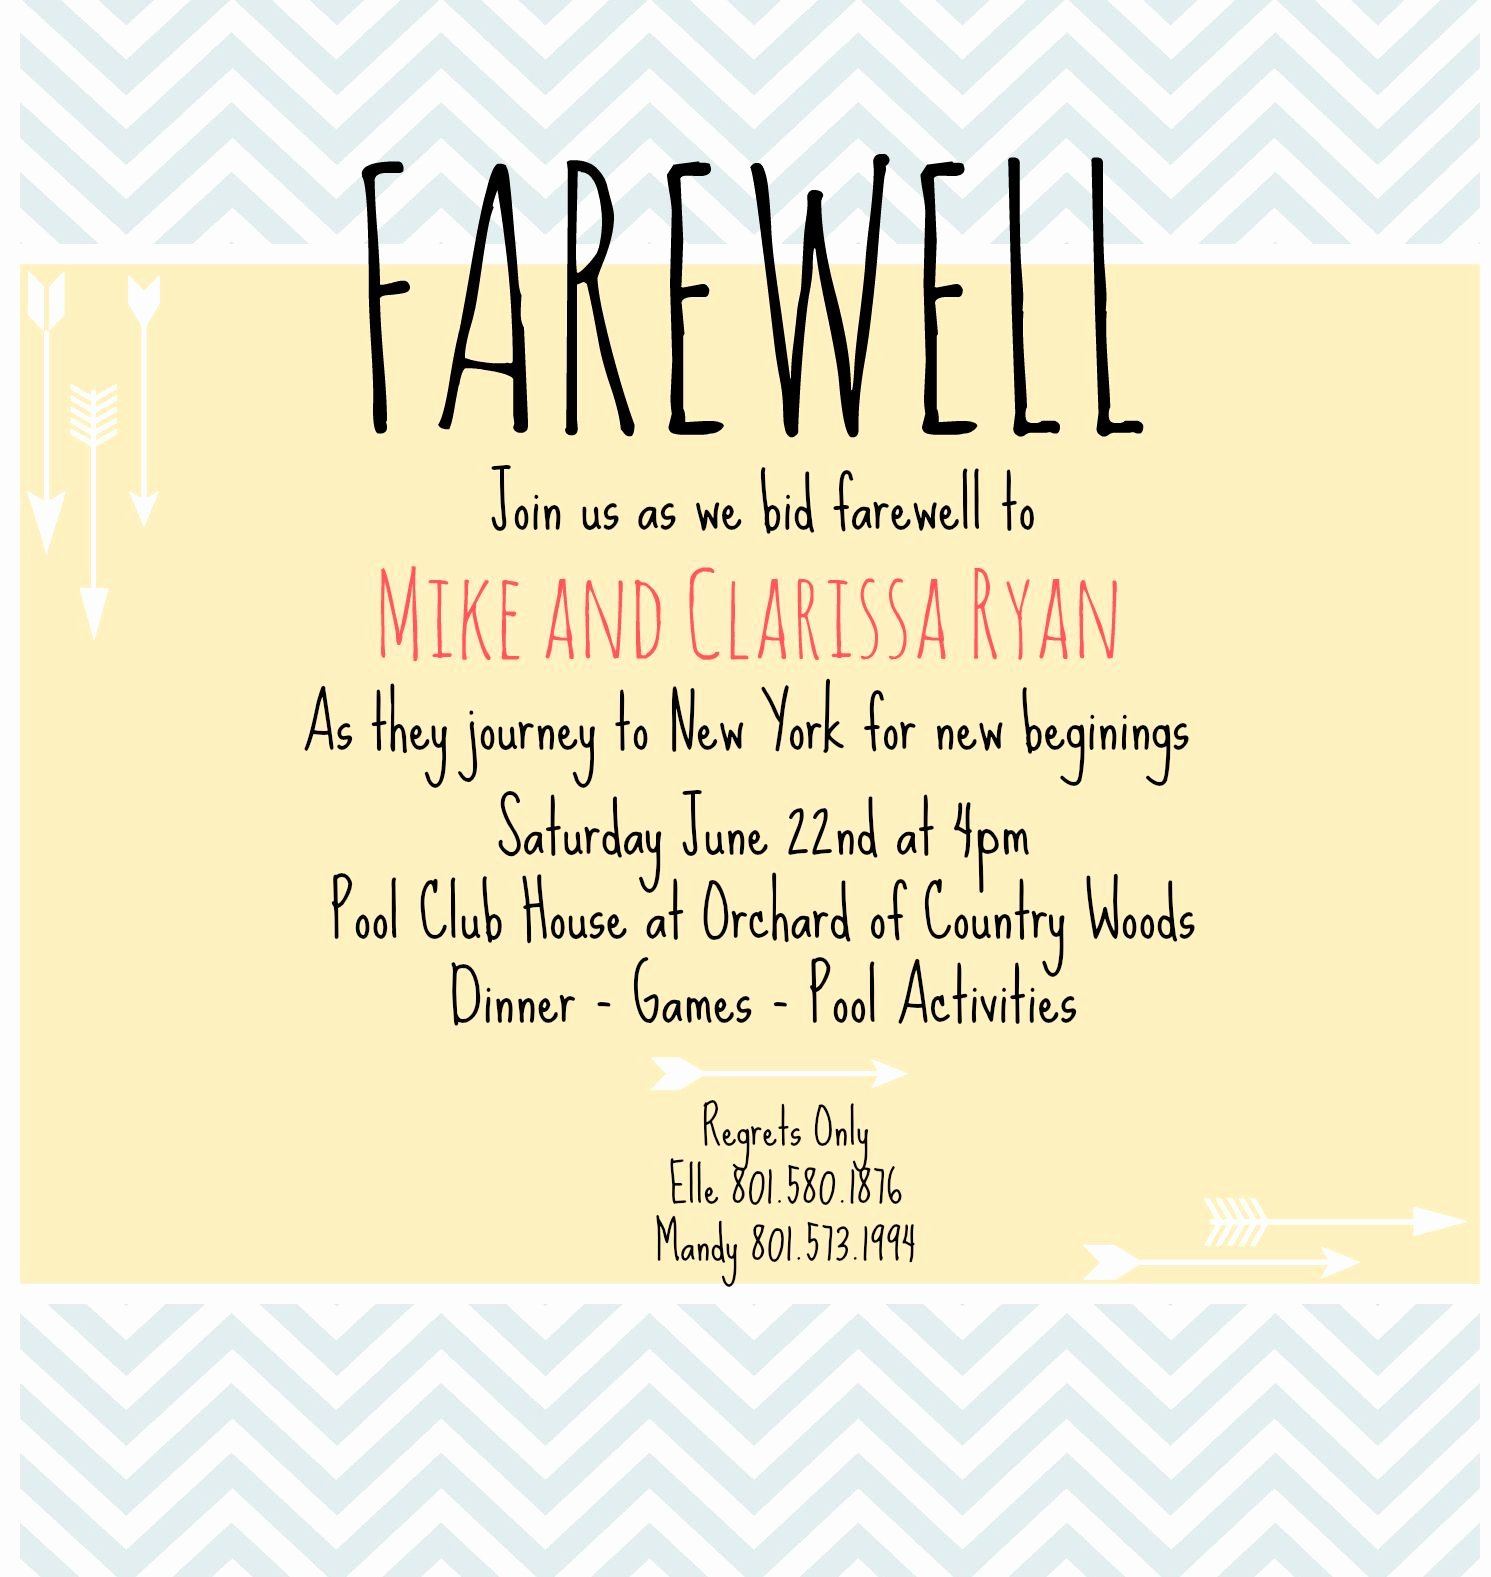 Get together Invitation Wording Samples Elegant Farewell Invite Picmonkey Creations